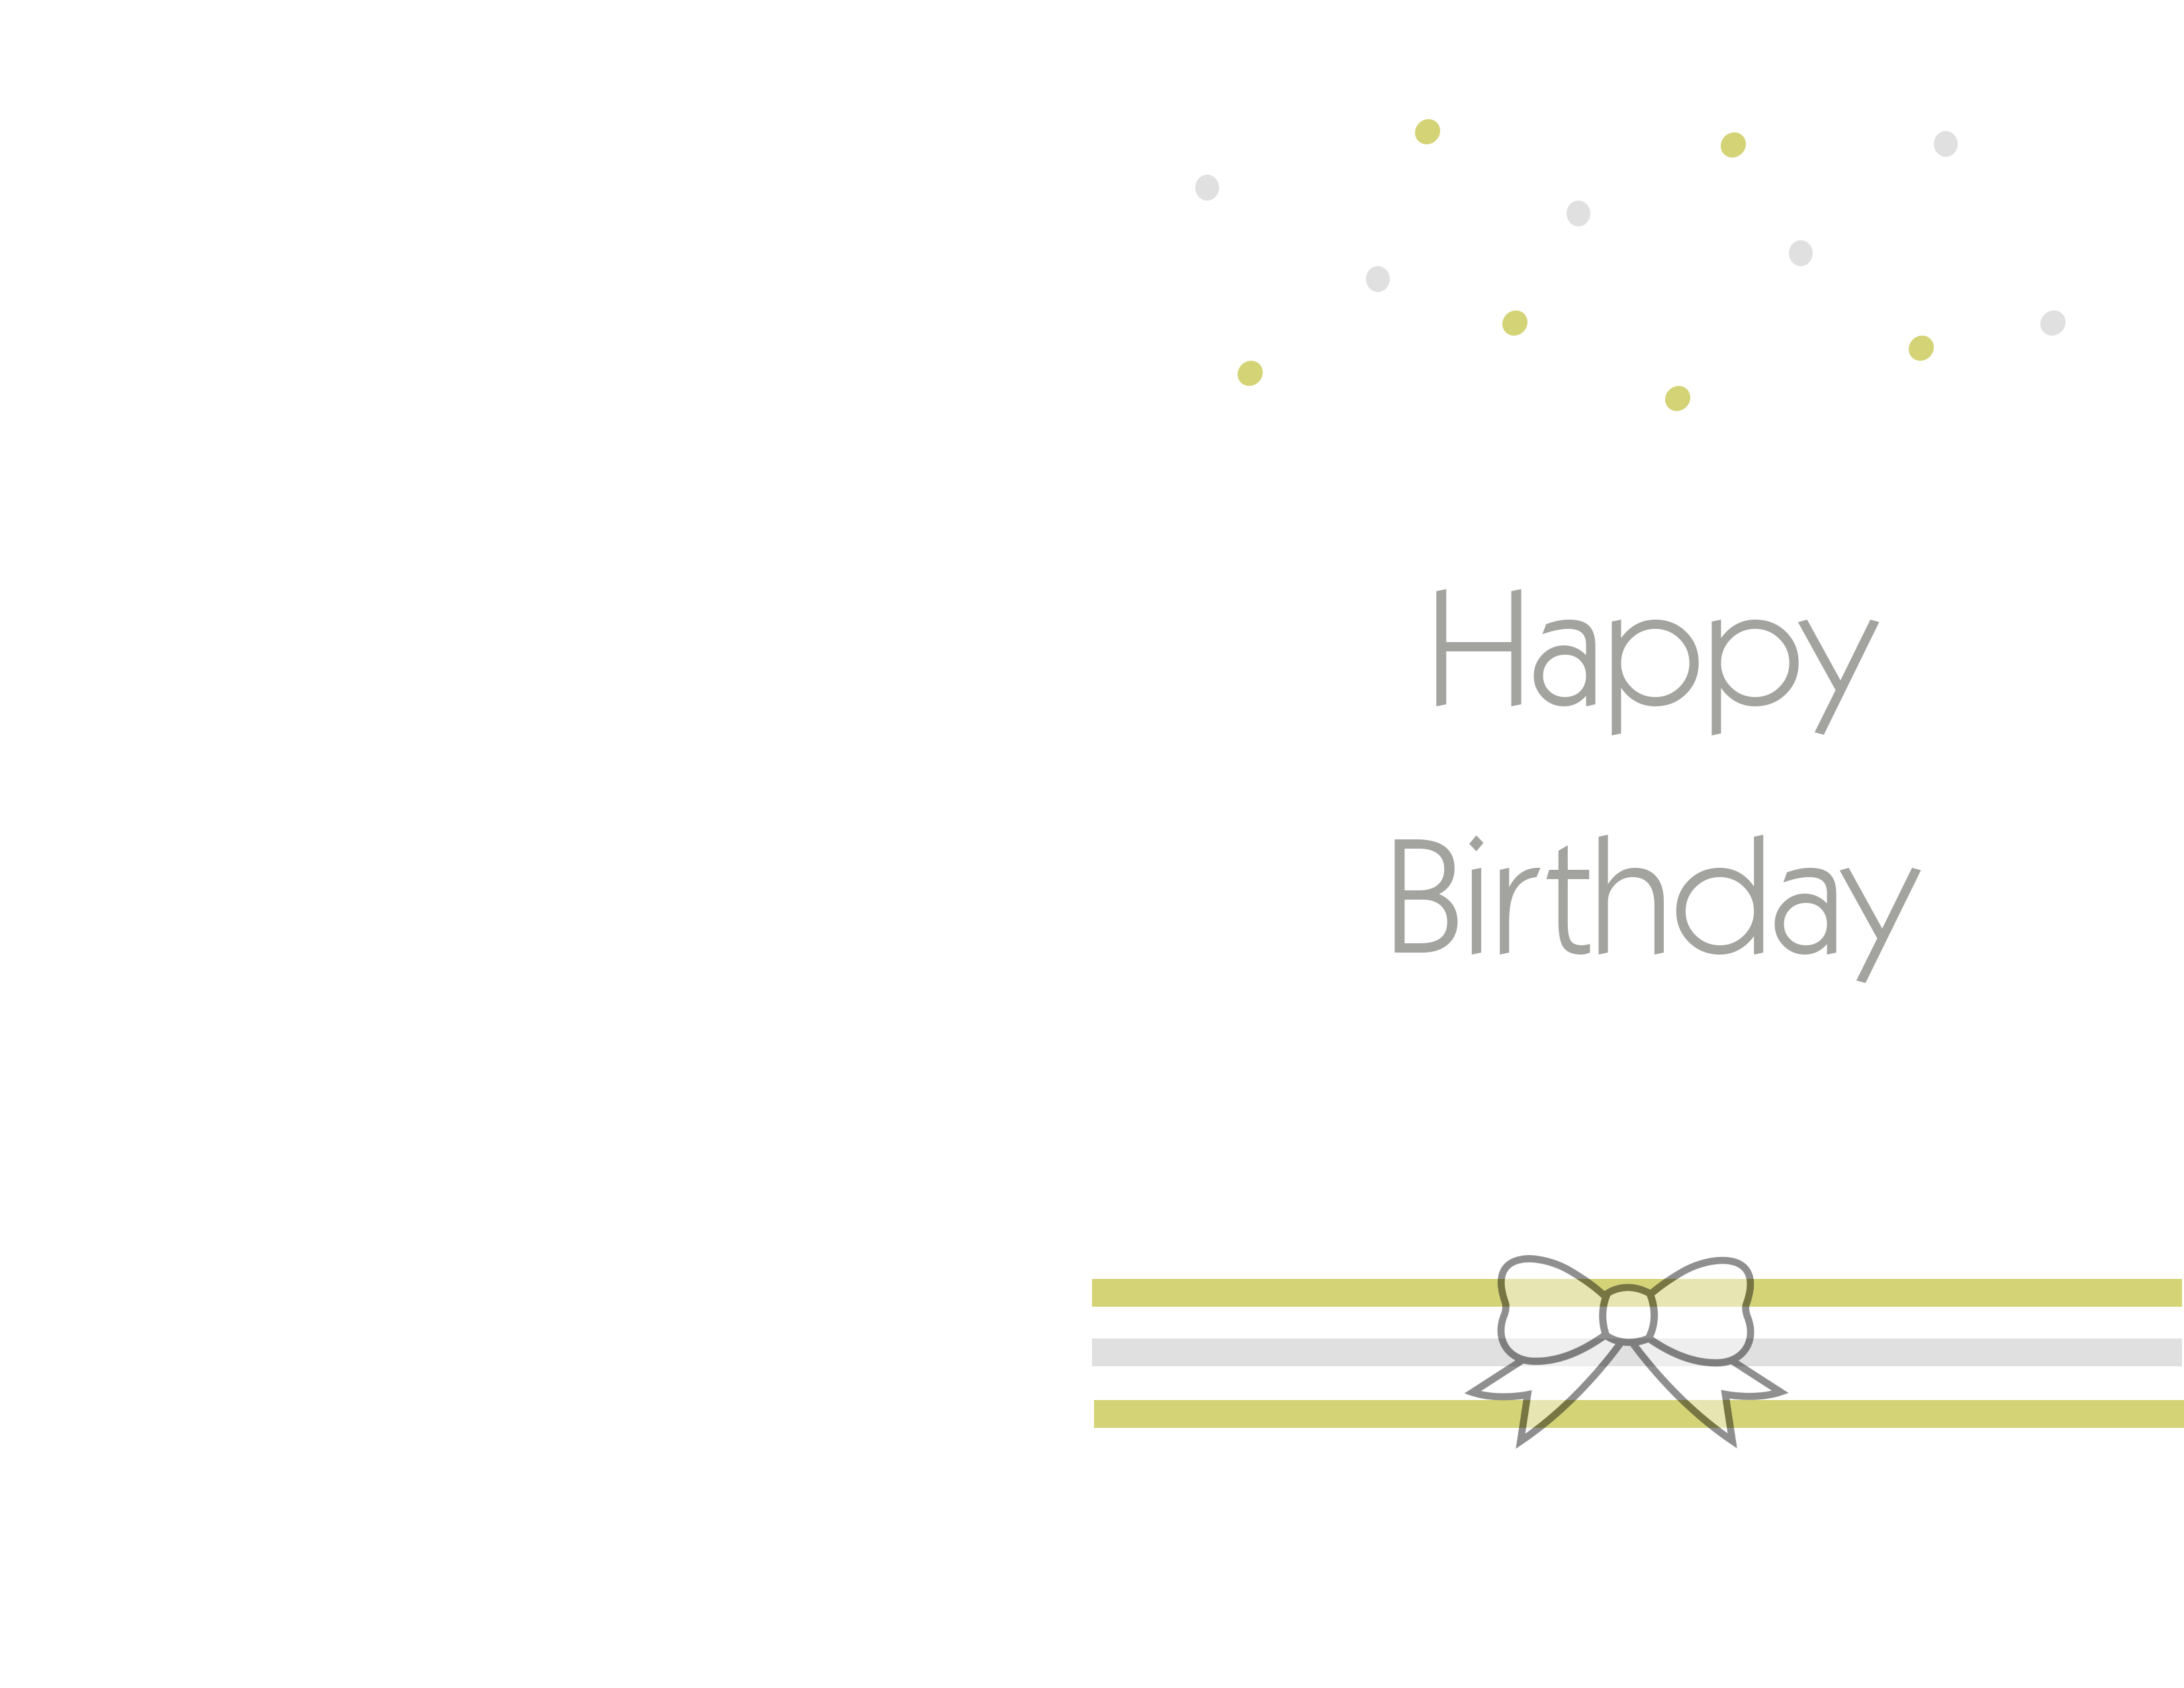 birthday card design printable ; filed-simple-vintage-design-soft-green-with-ribbon-image-decorations-happy-birthday-grey-fonts-design-birthday-card-printable